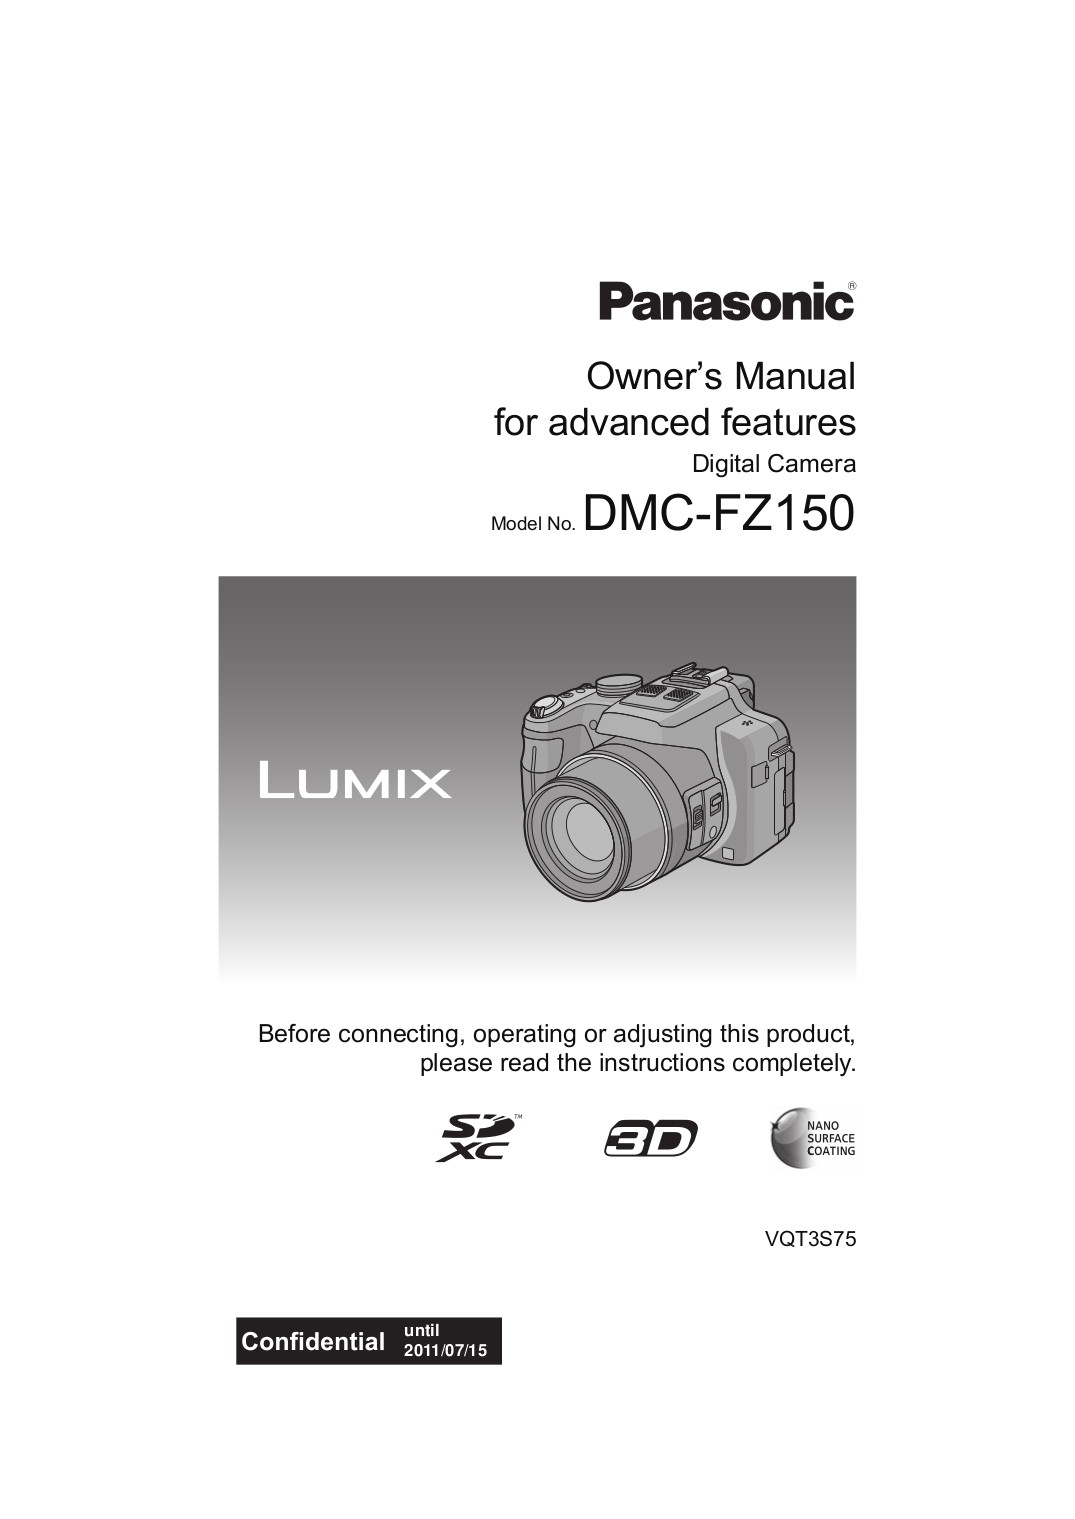 panasonic lumix fz150 manual